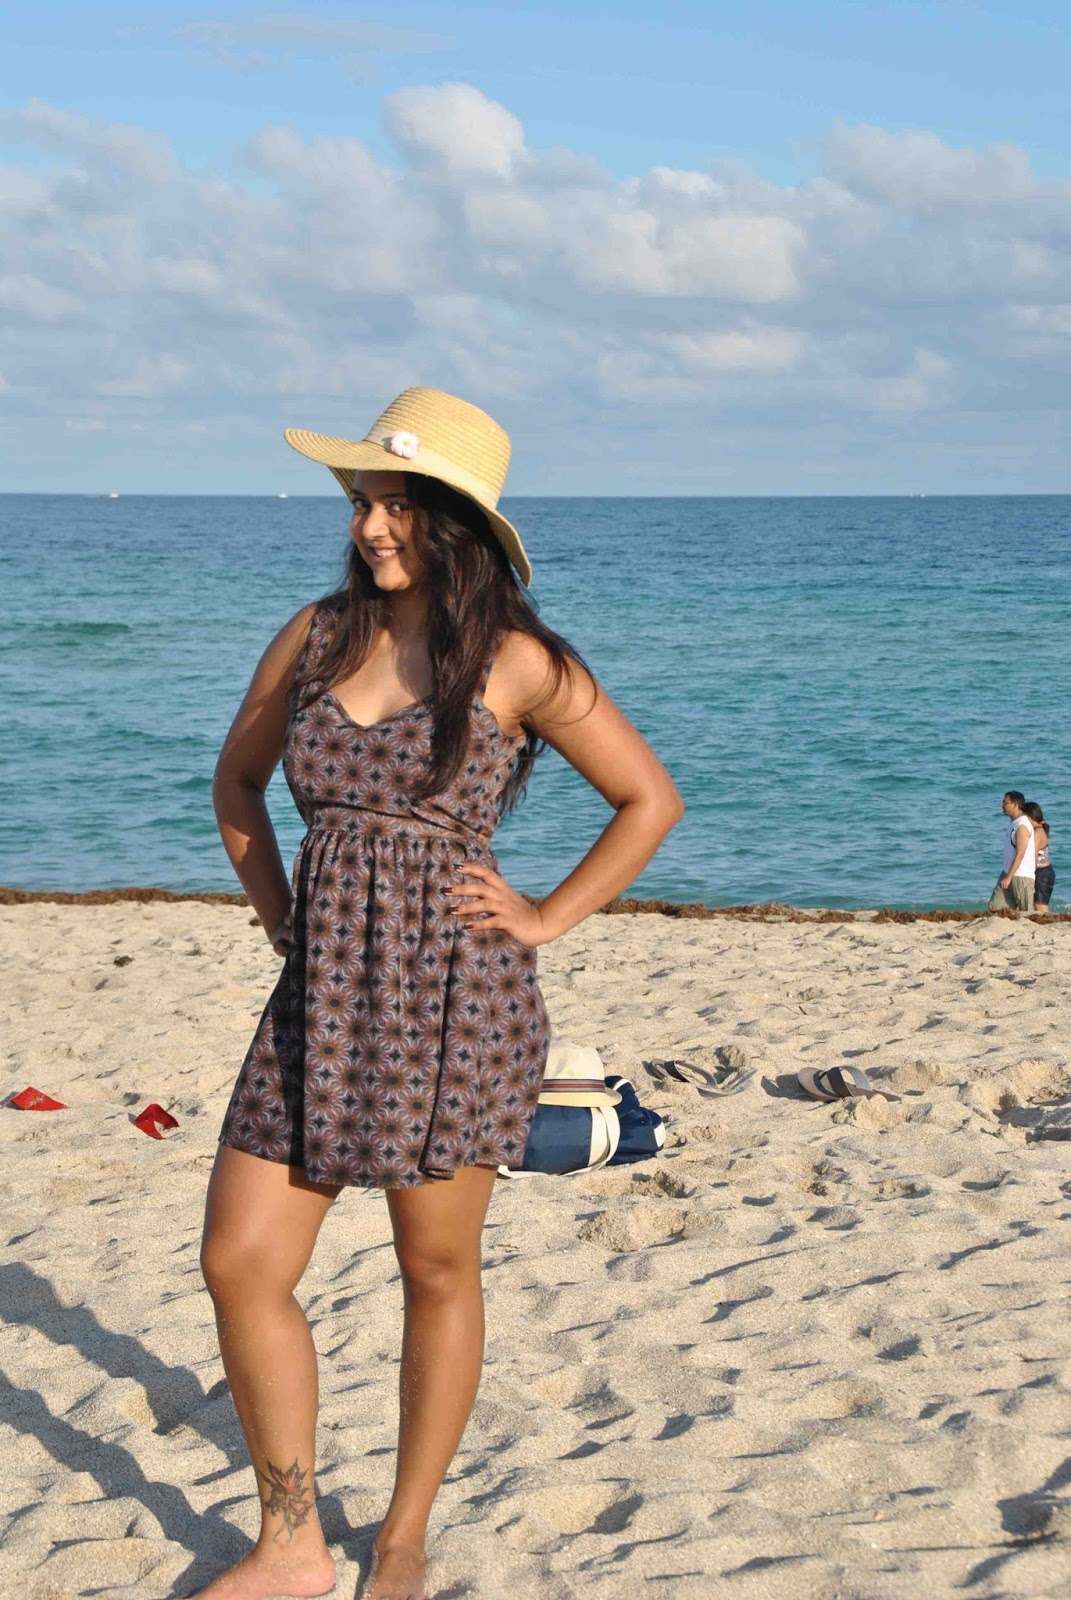 Beach dresses, indian girl in beach dress, ananya kiran, ananya in Miami, open back dresses, summer dresses, girl wearing a hat